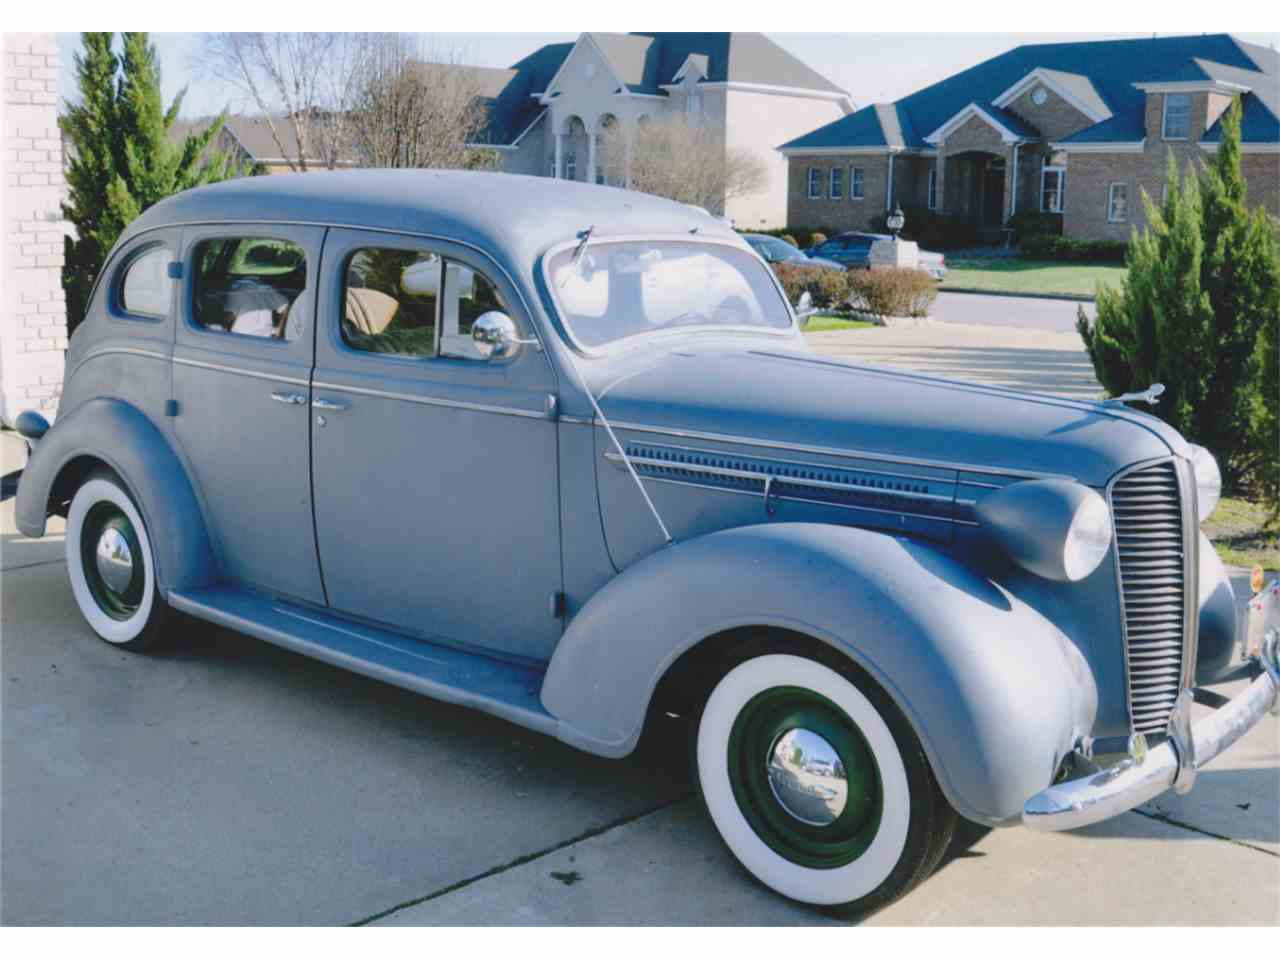 1937 Dodge Coupe Street Rod Project Car For Sale: 1937 Dodge Brothers D5 Sedan For Sale